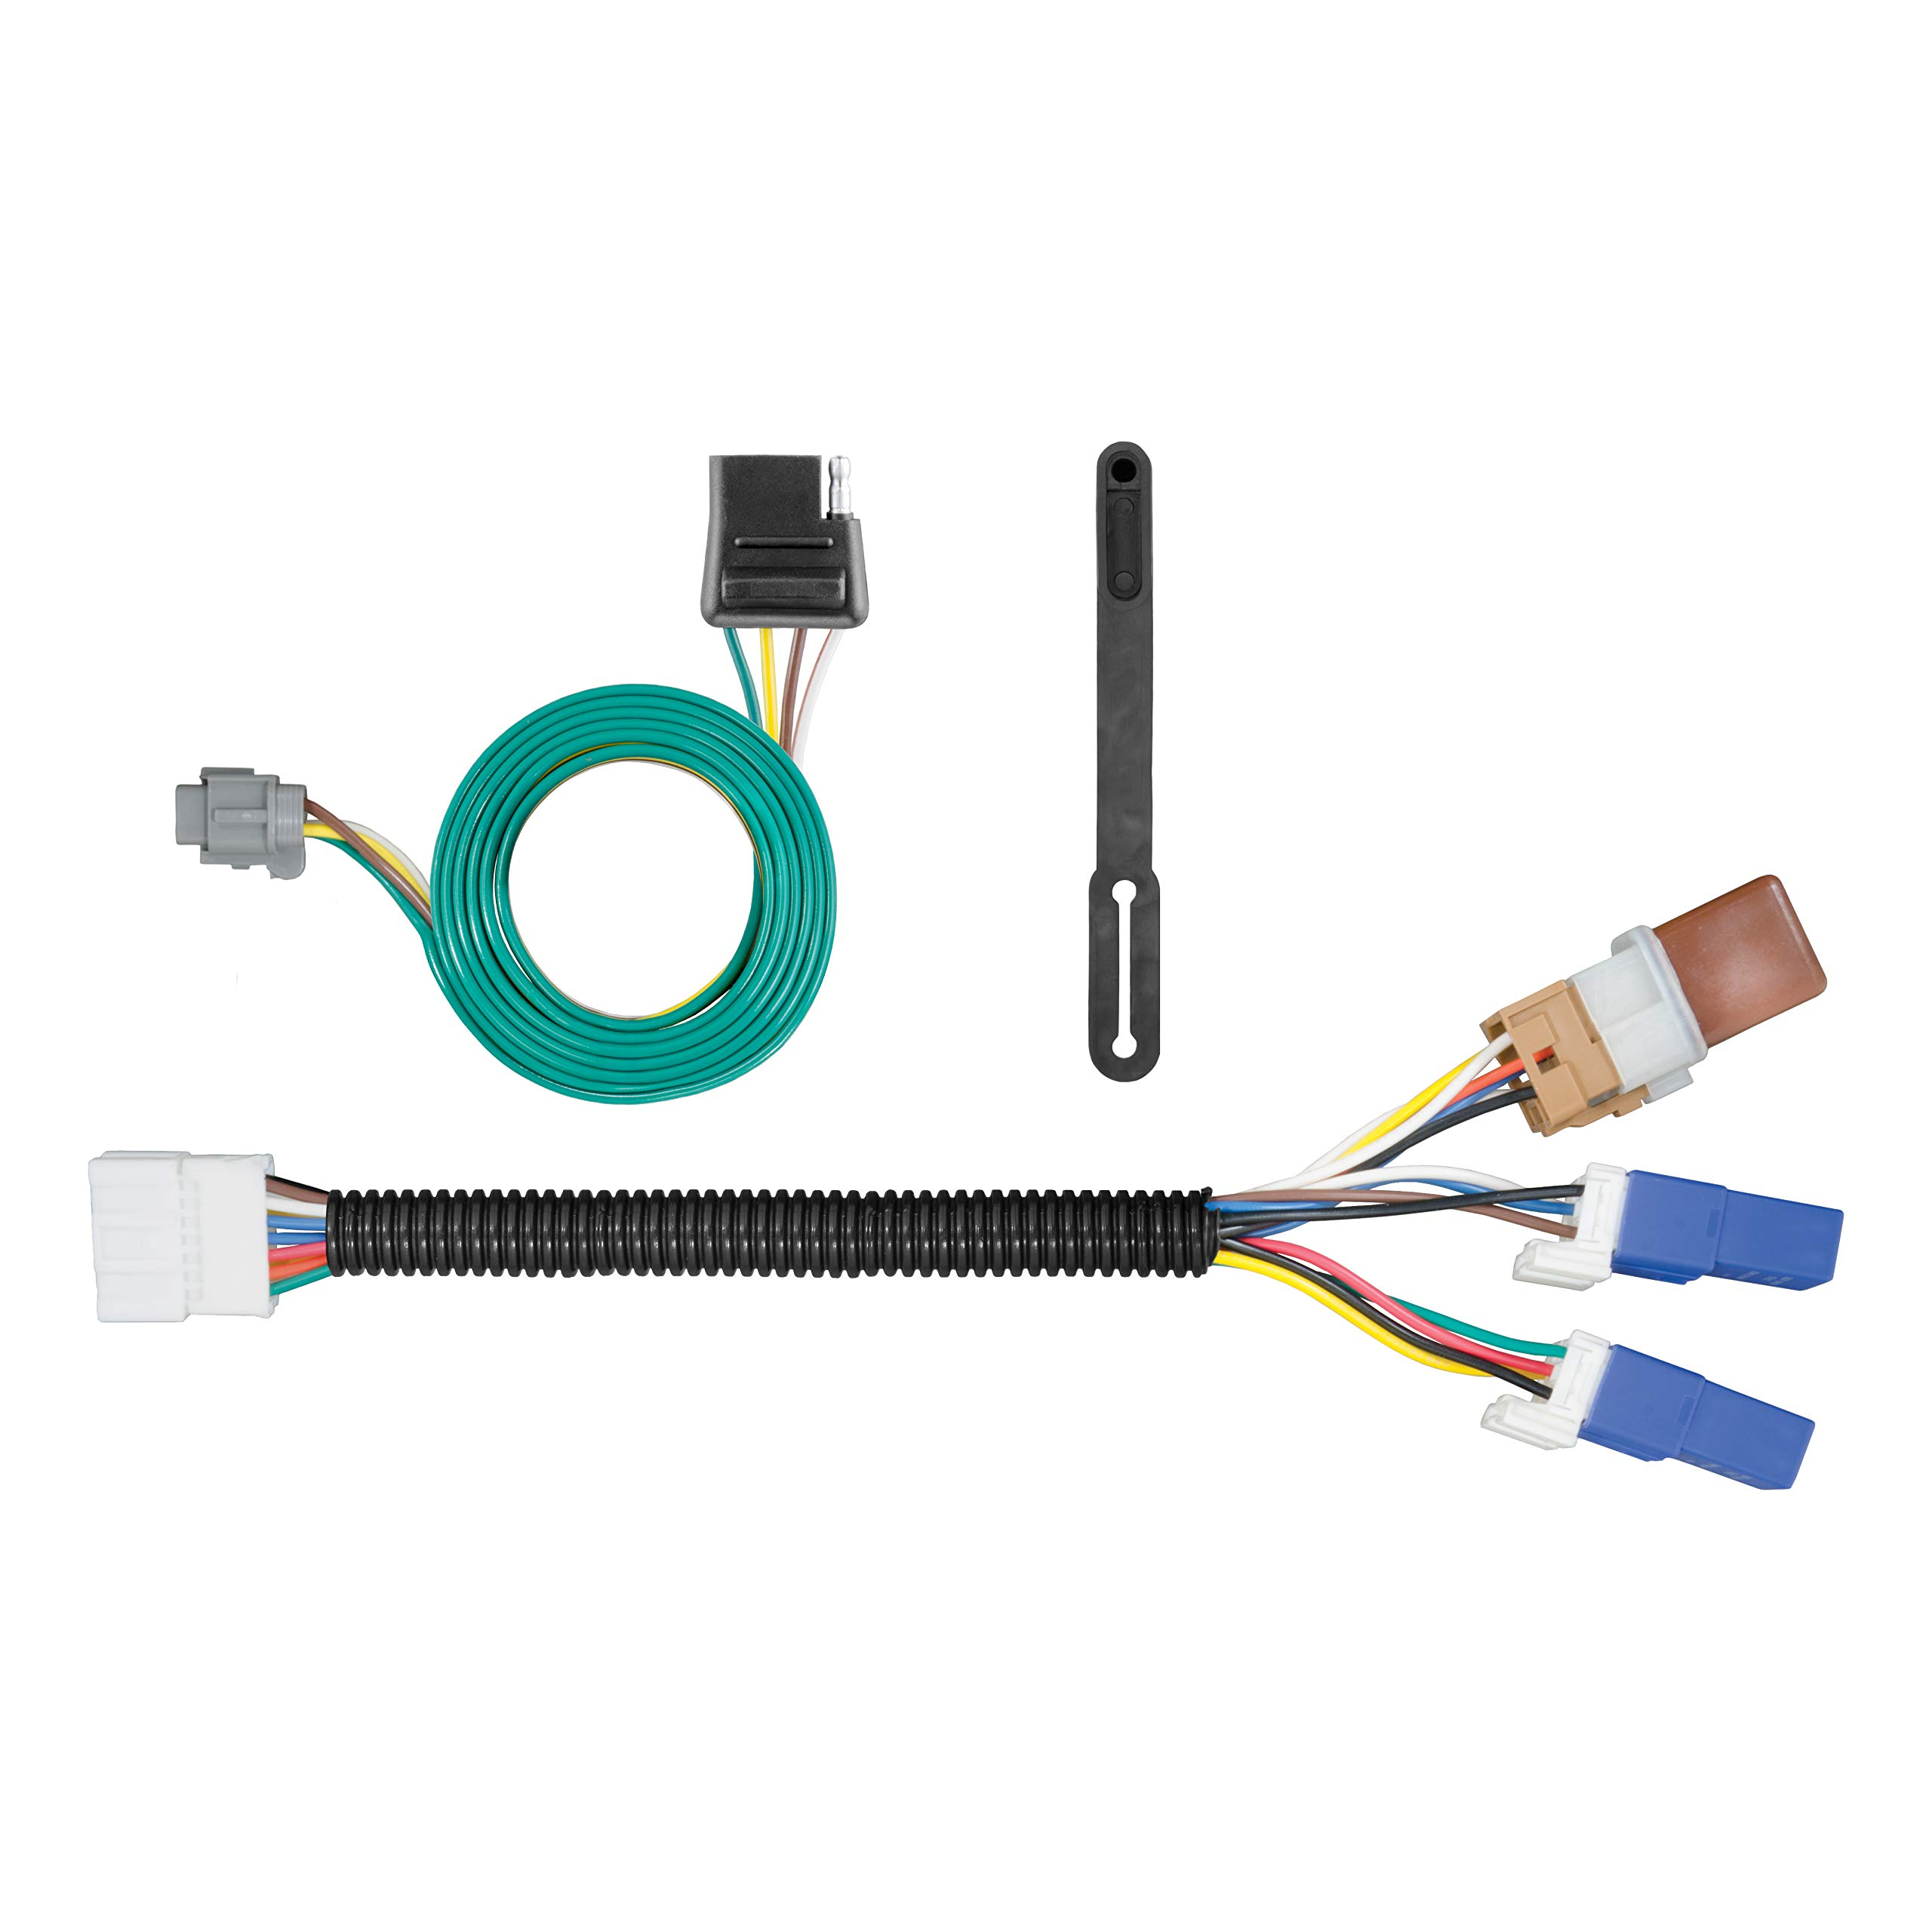 CURT 56281 Vehicle-Side Custom 4-Pin Trailer Wiring Harness for Select Nissan Pathfinder, Infiniti QX60 by CURT